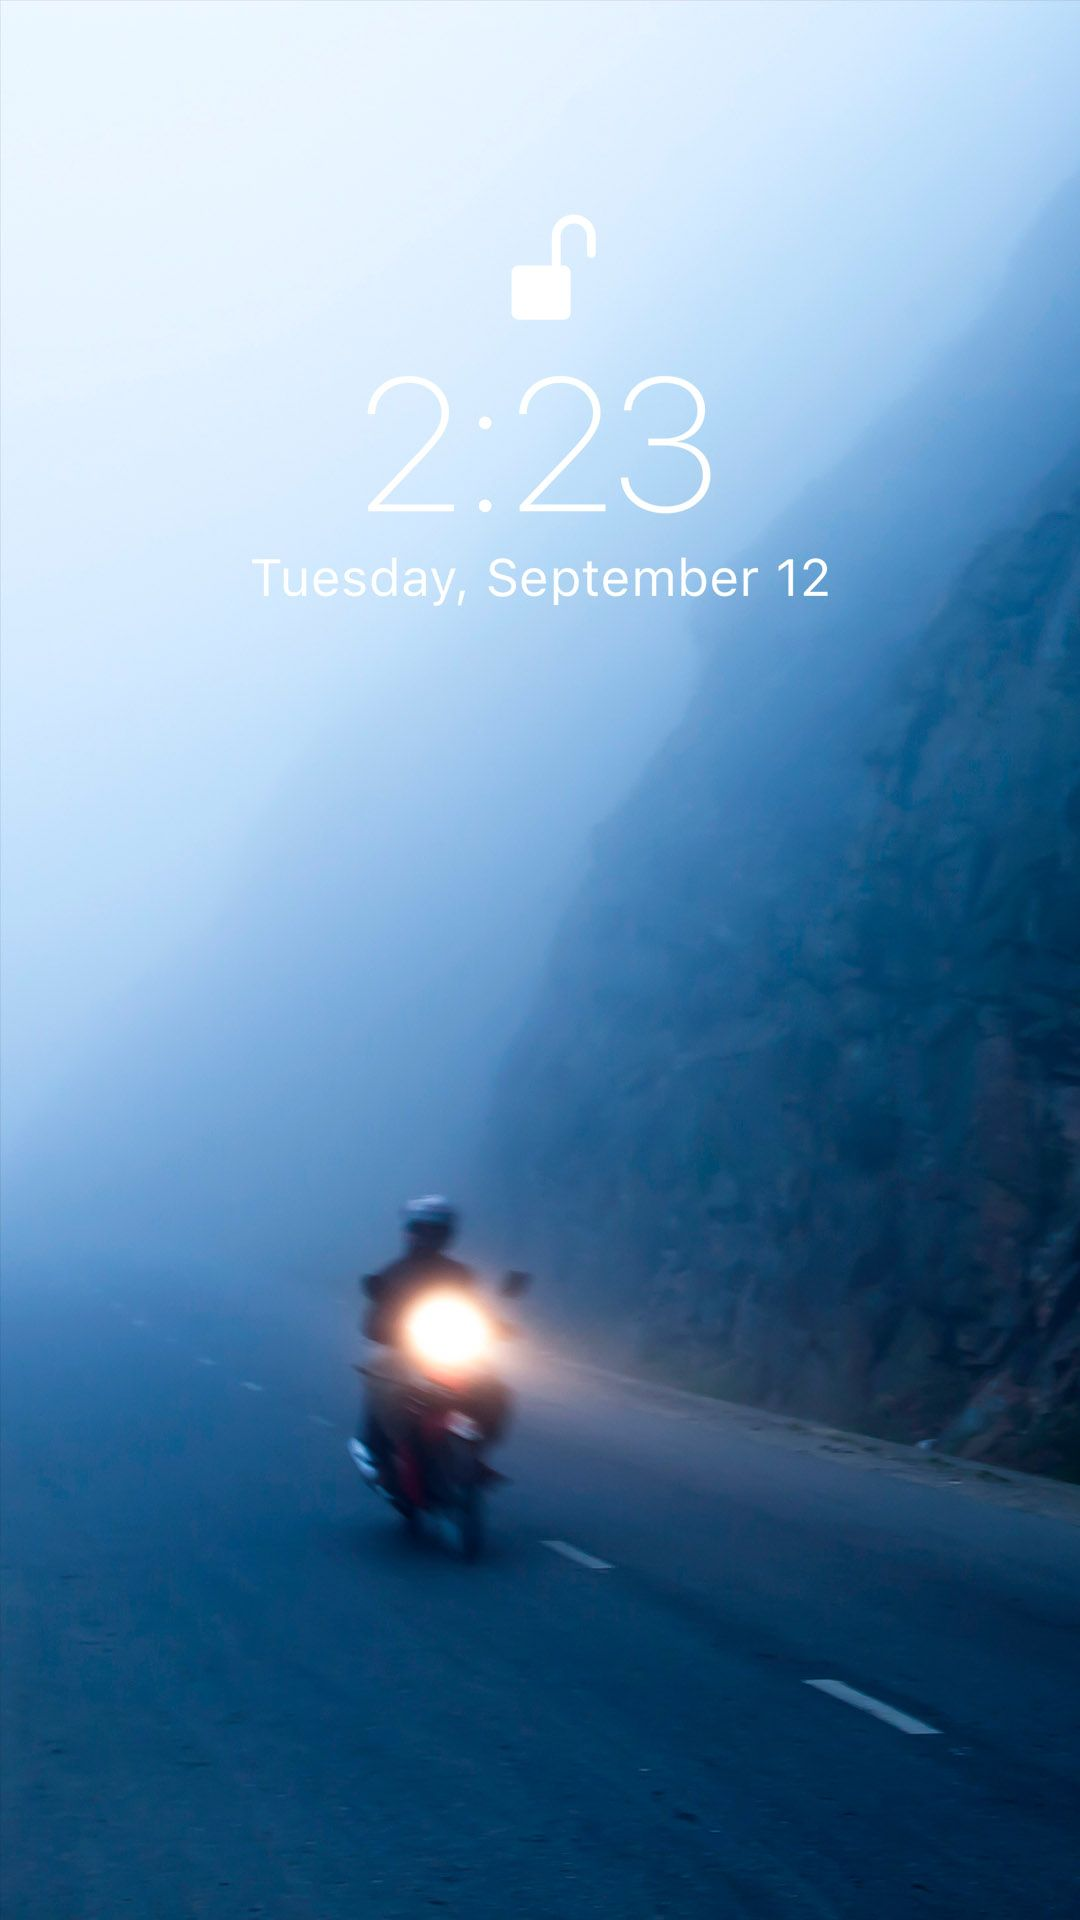 Beautiful fog screensaver for your iPhone X from Vibe app